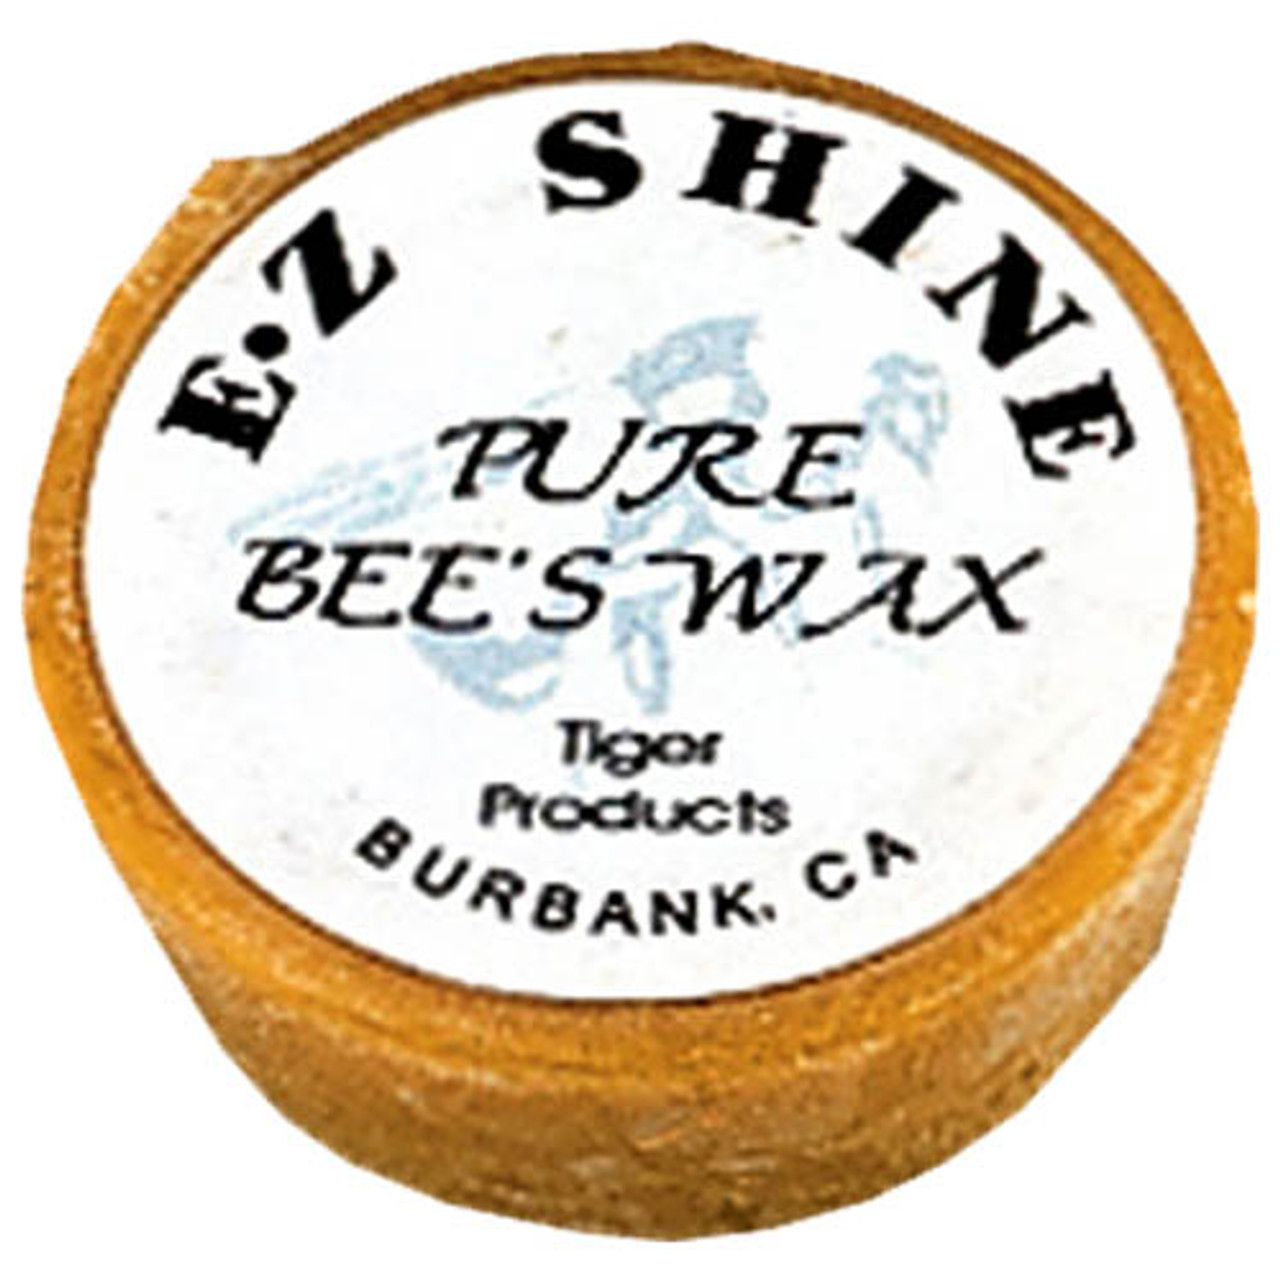 E-Z Shine Bee's Wax